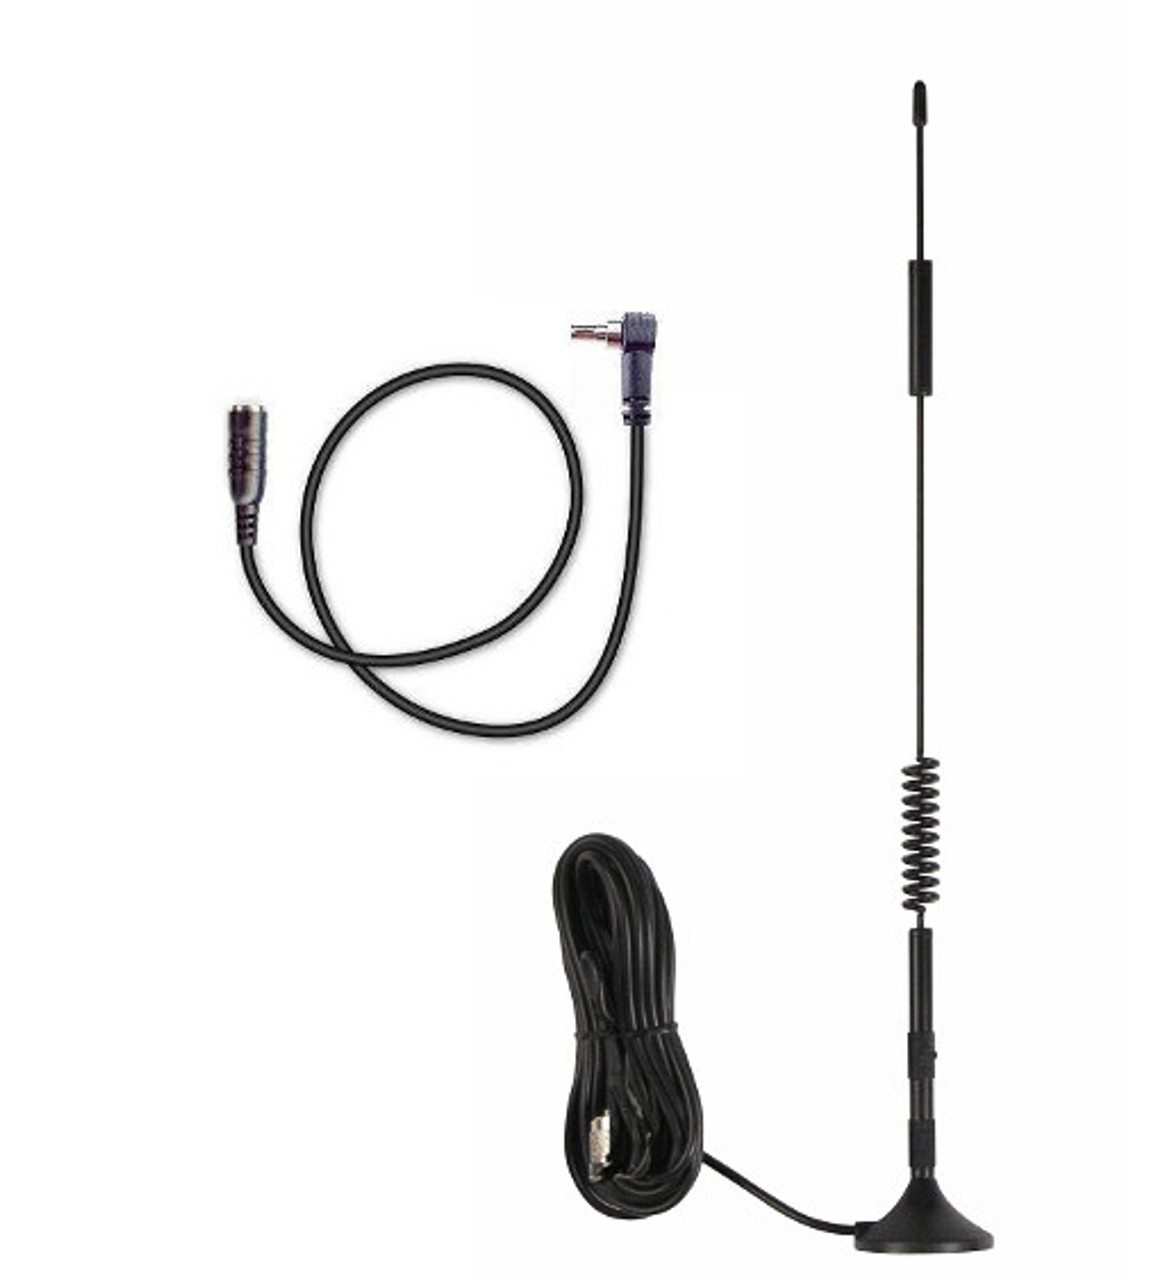 verizon pantech uml295 external antenna and adapter boosters